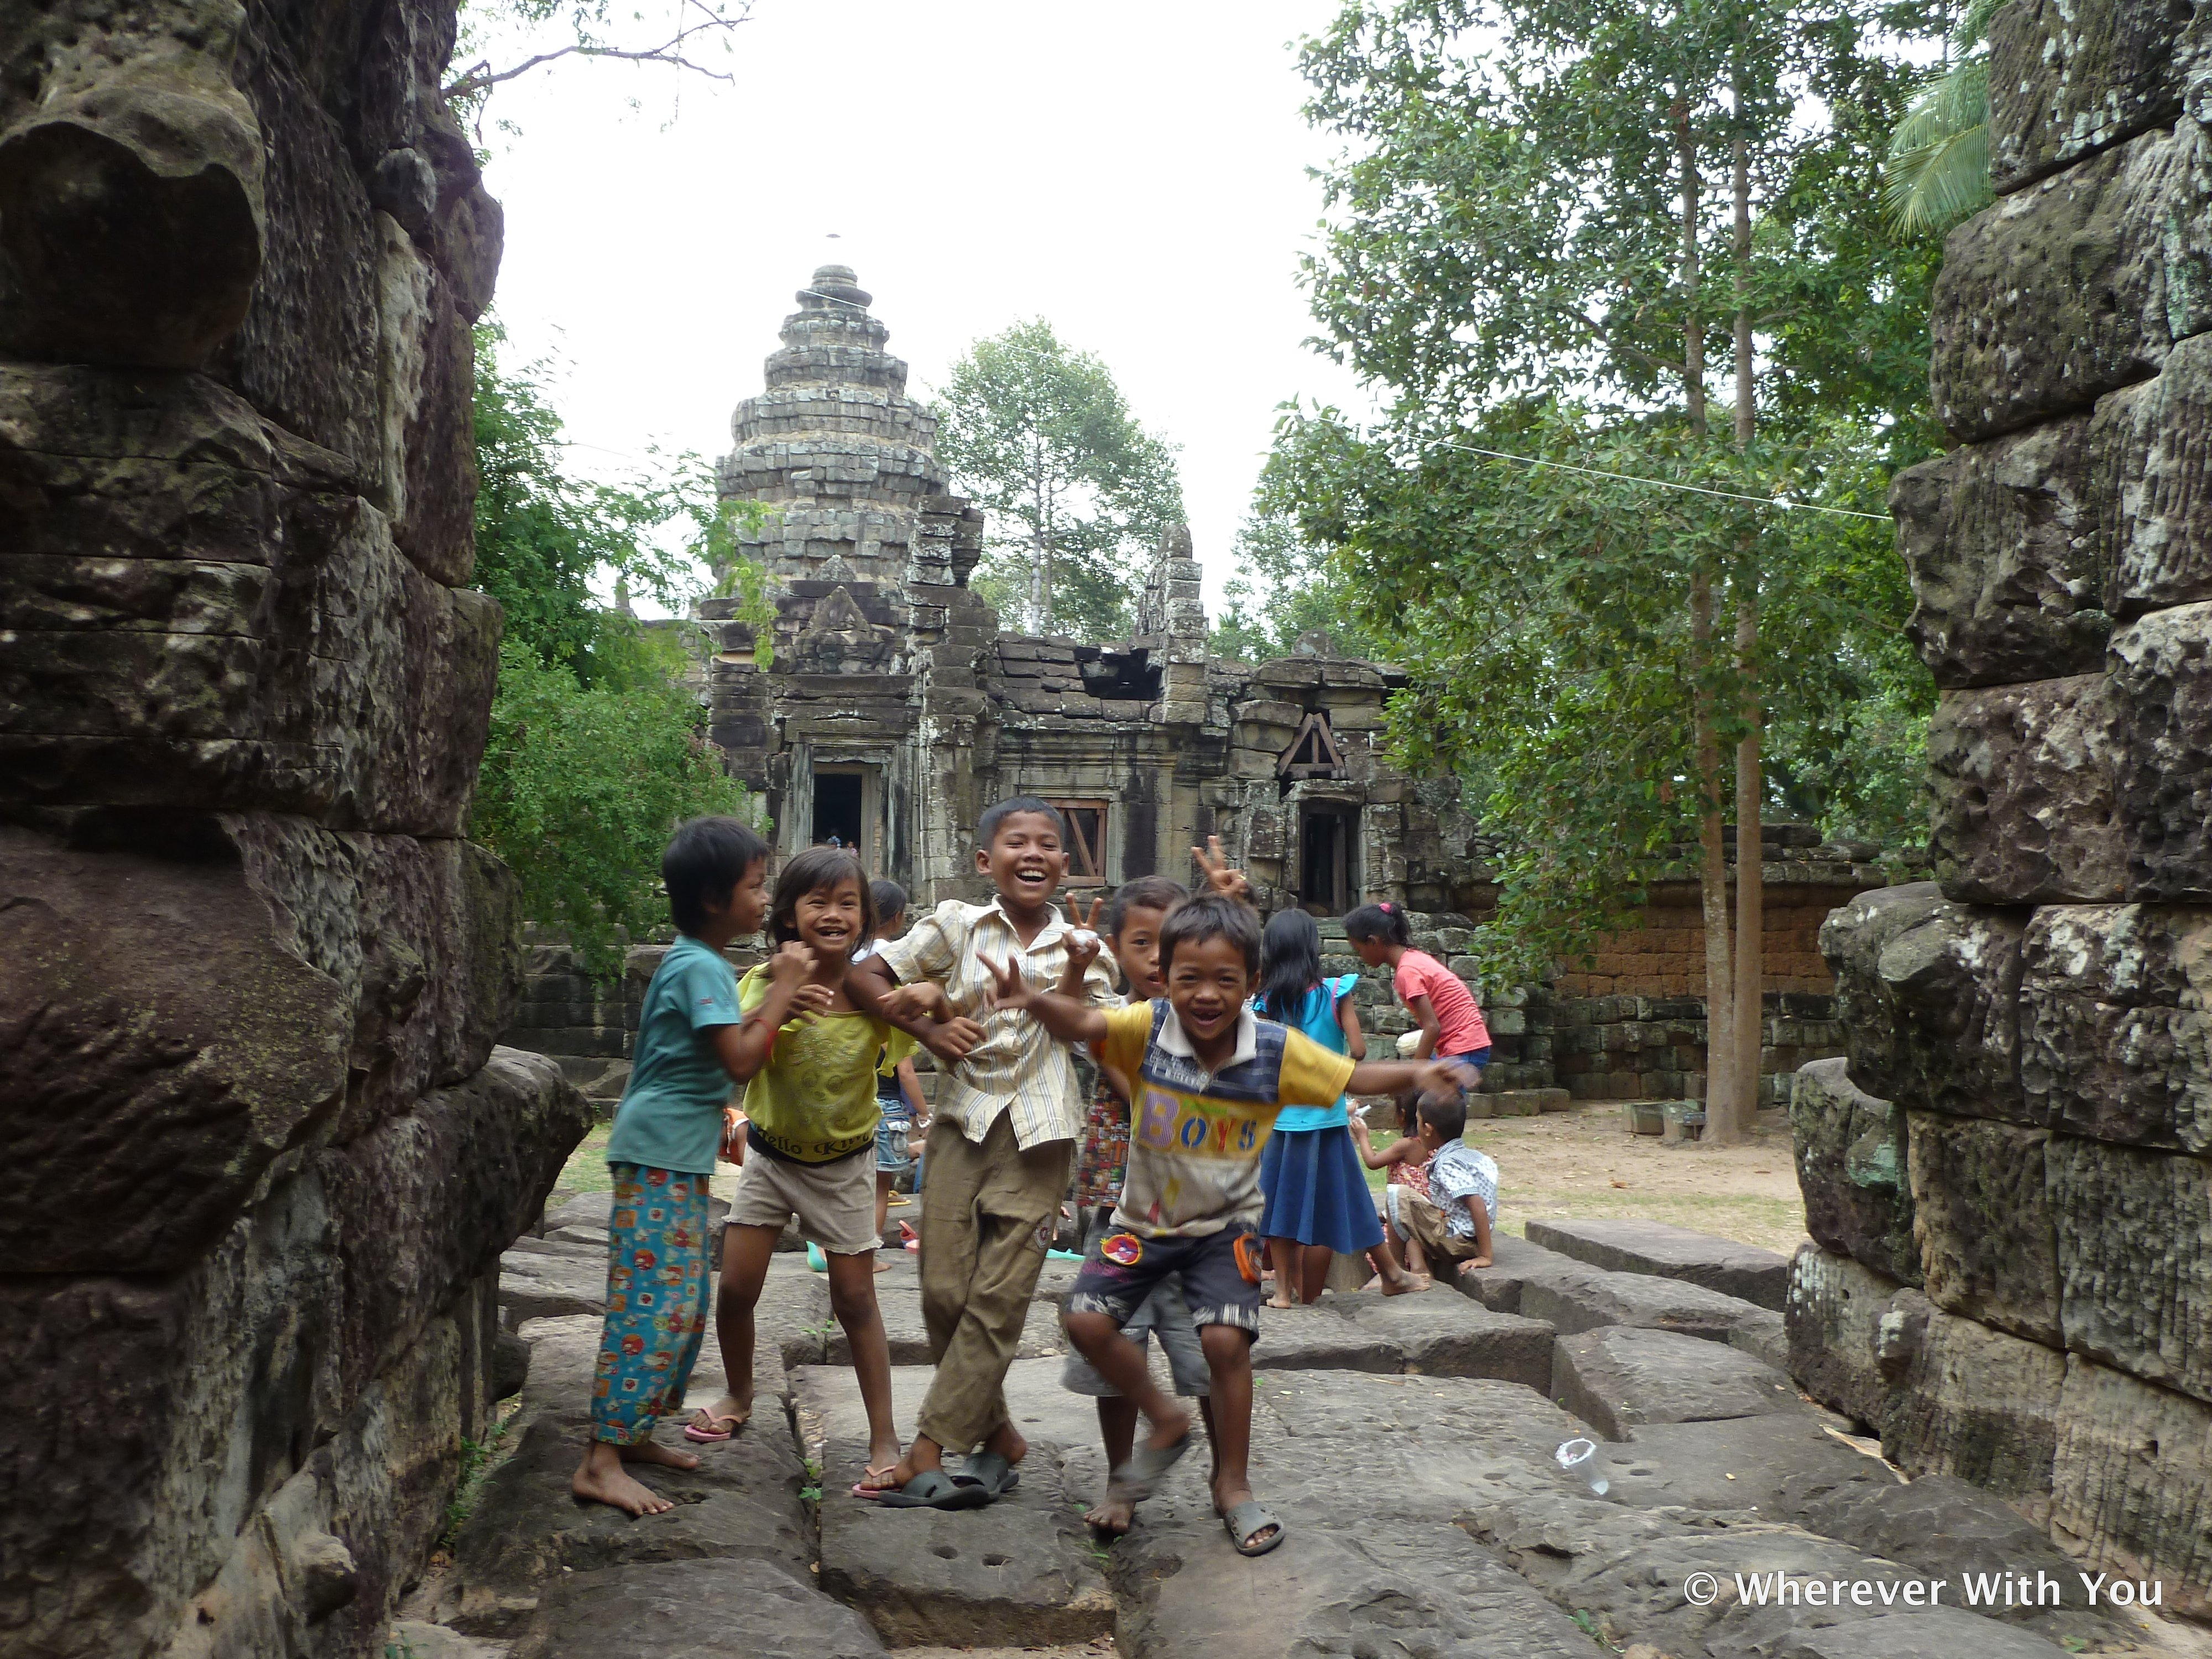 Children celebrating the final day of the Khmer New Year (and also excited to meet Americans).